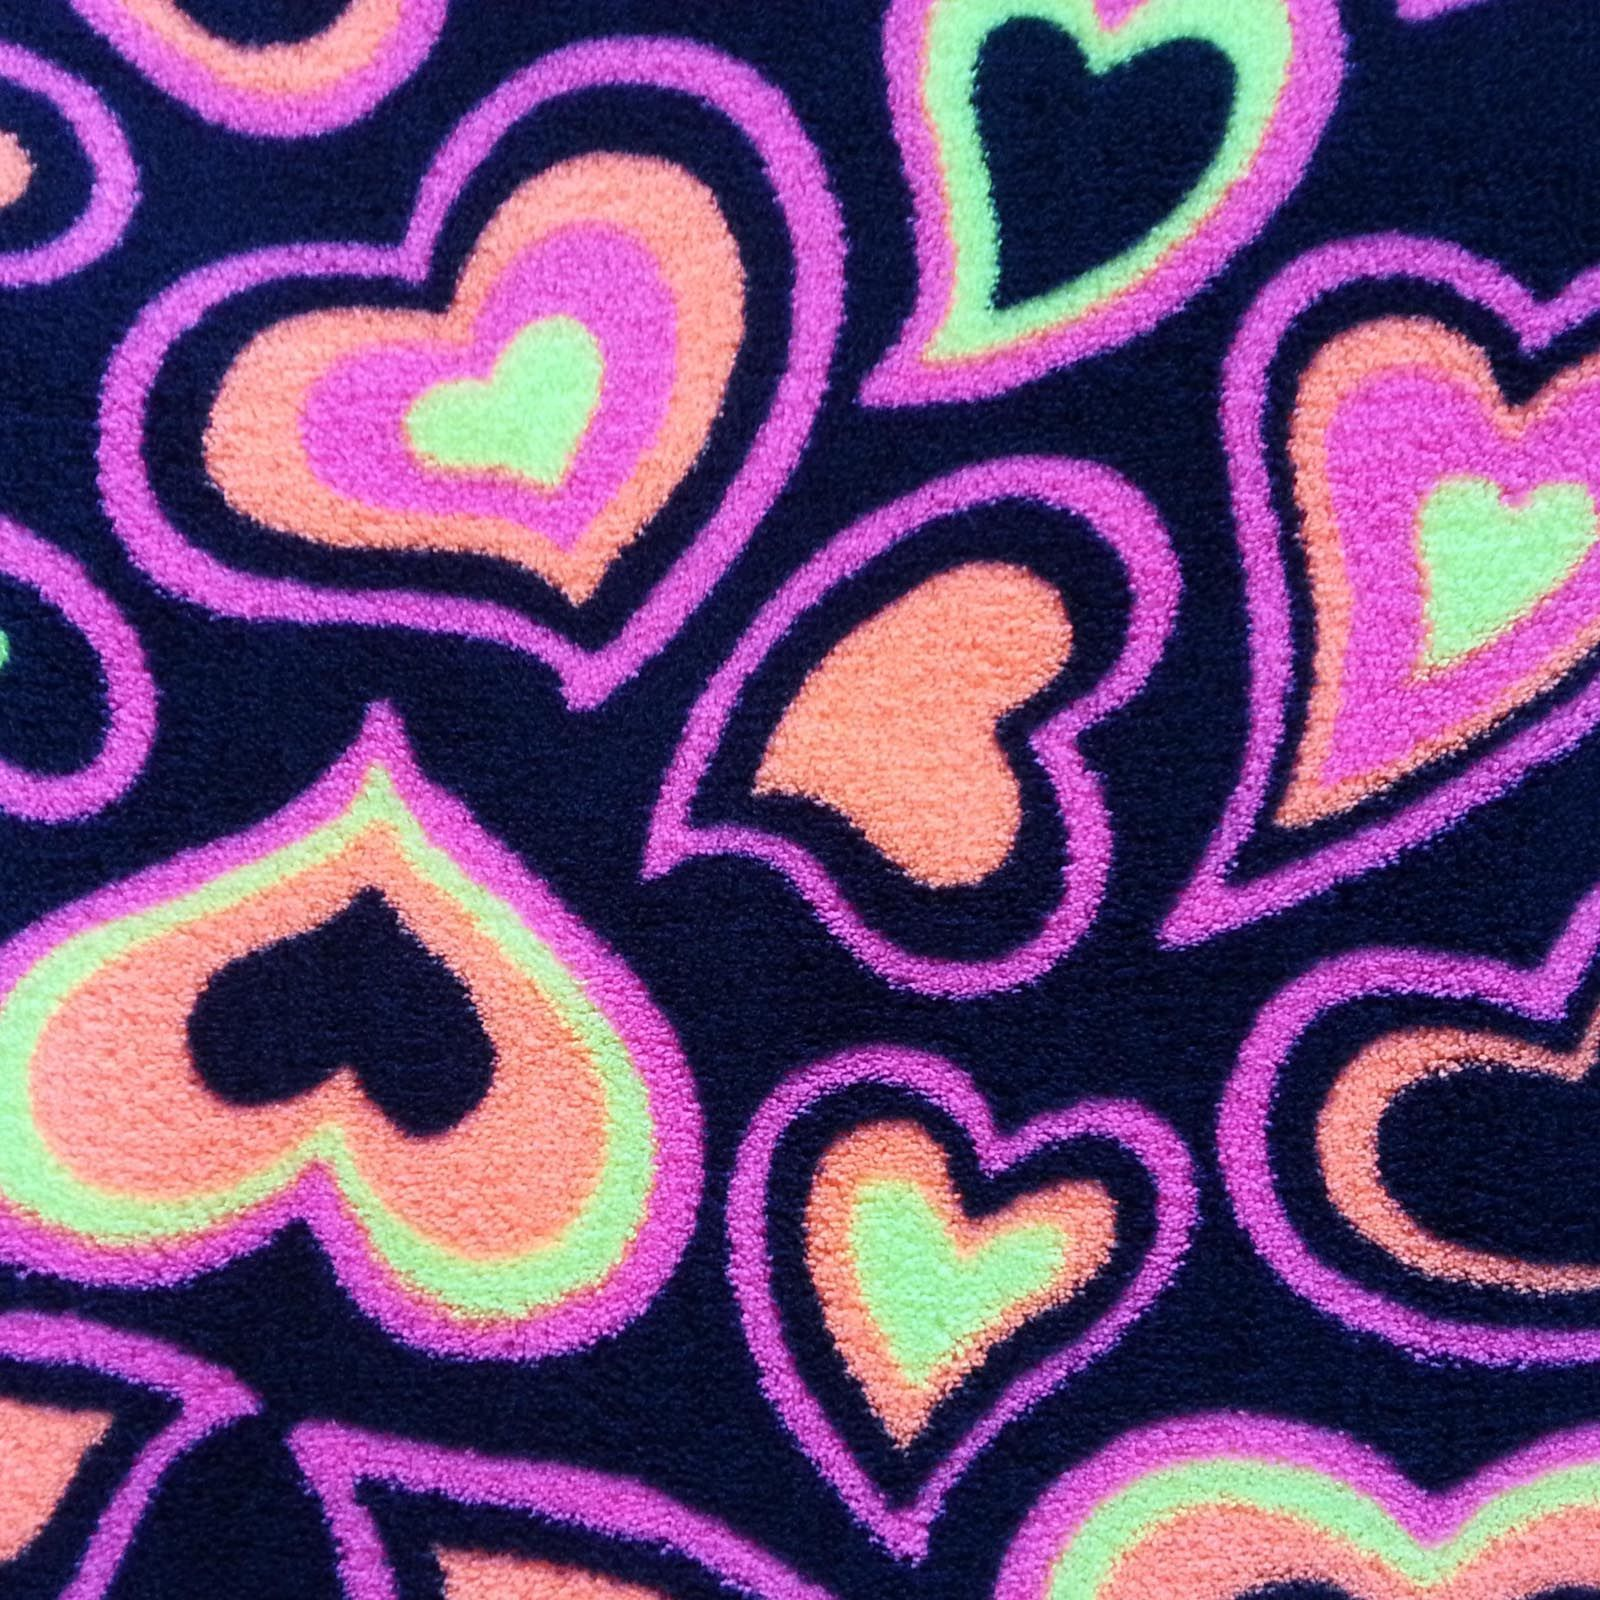 Ultra fluffy fabricneon hearts fabrics and patches in